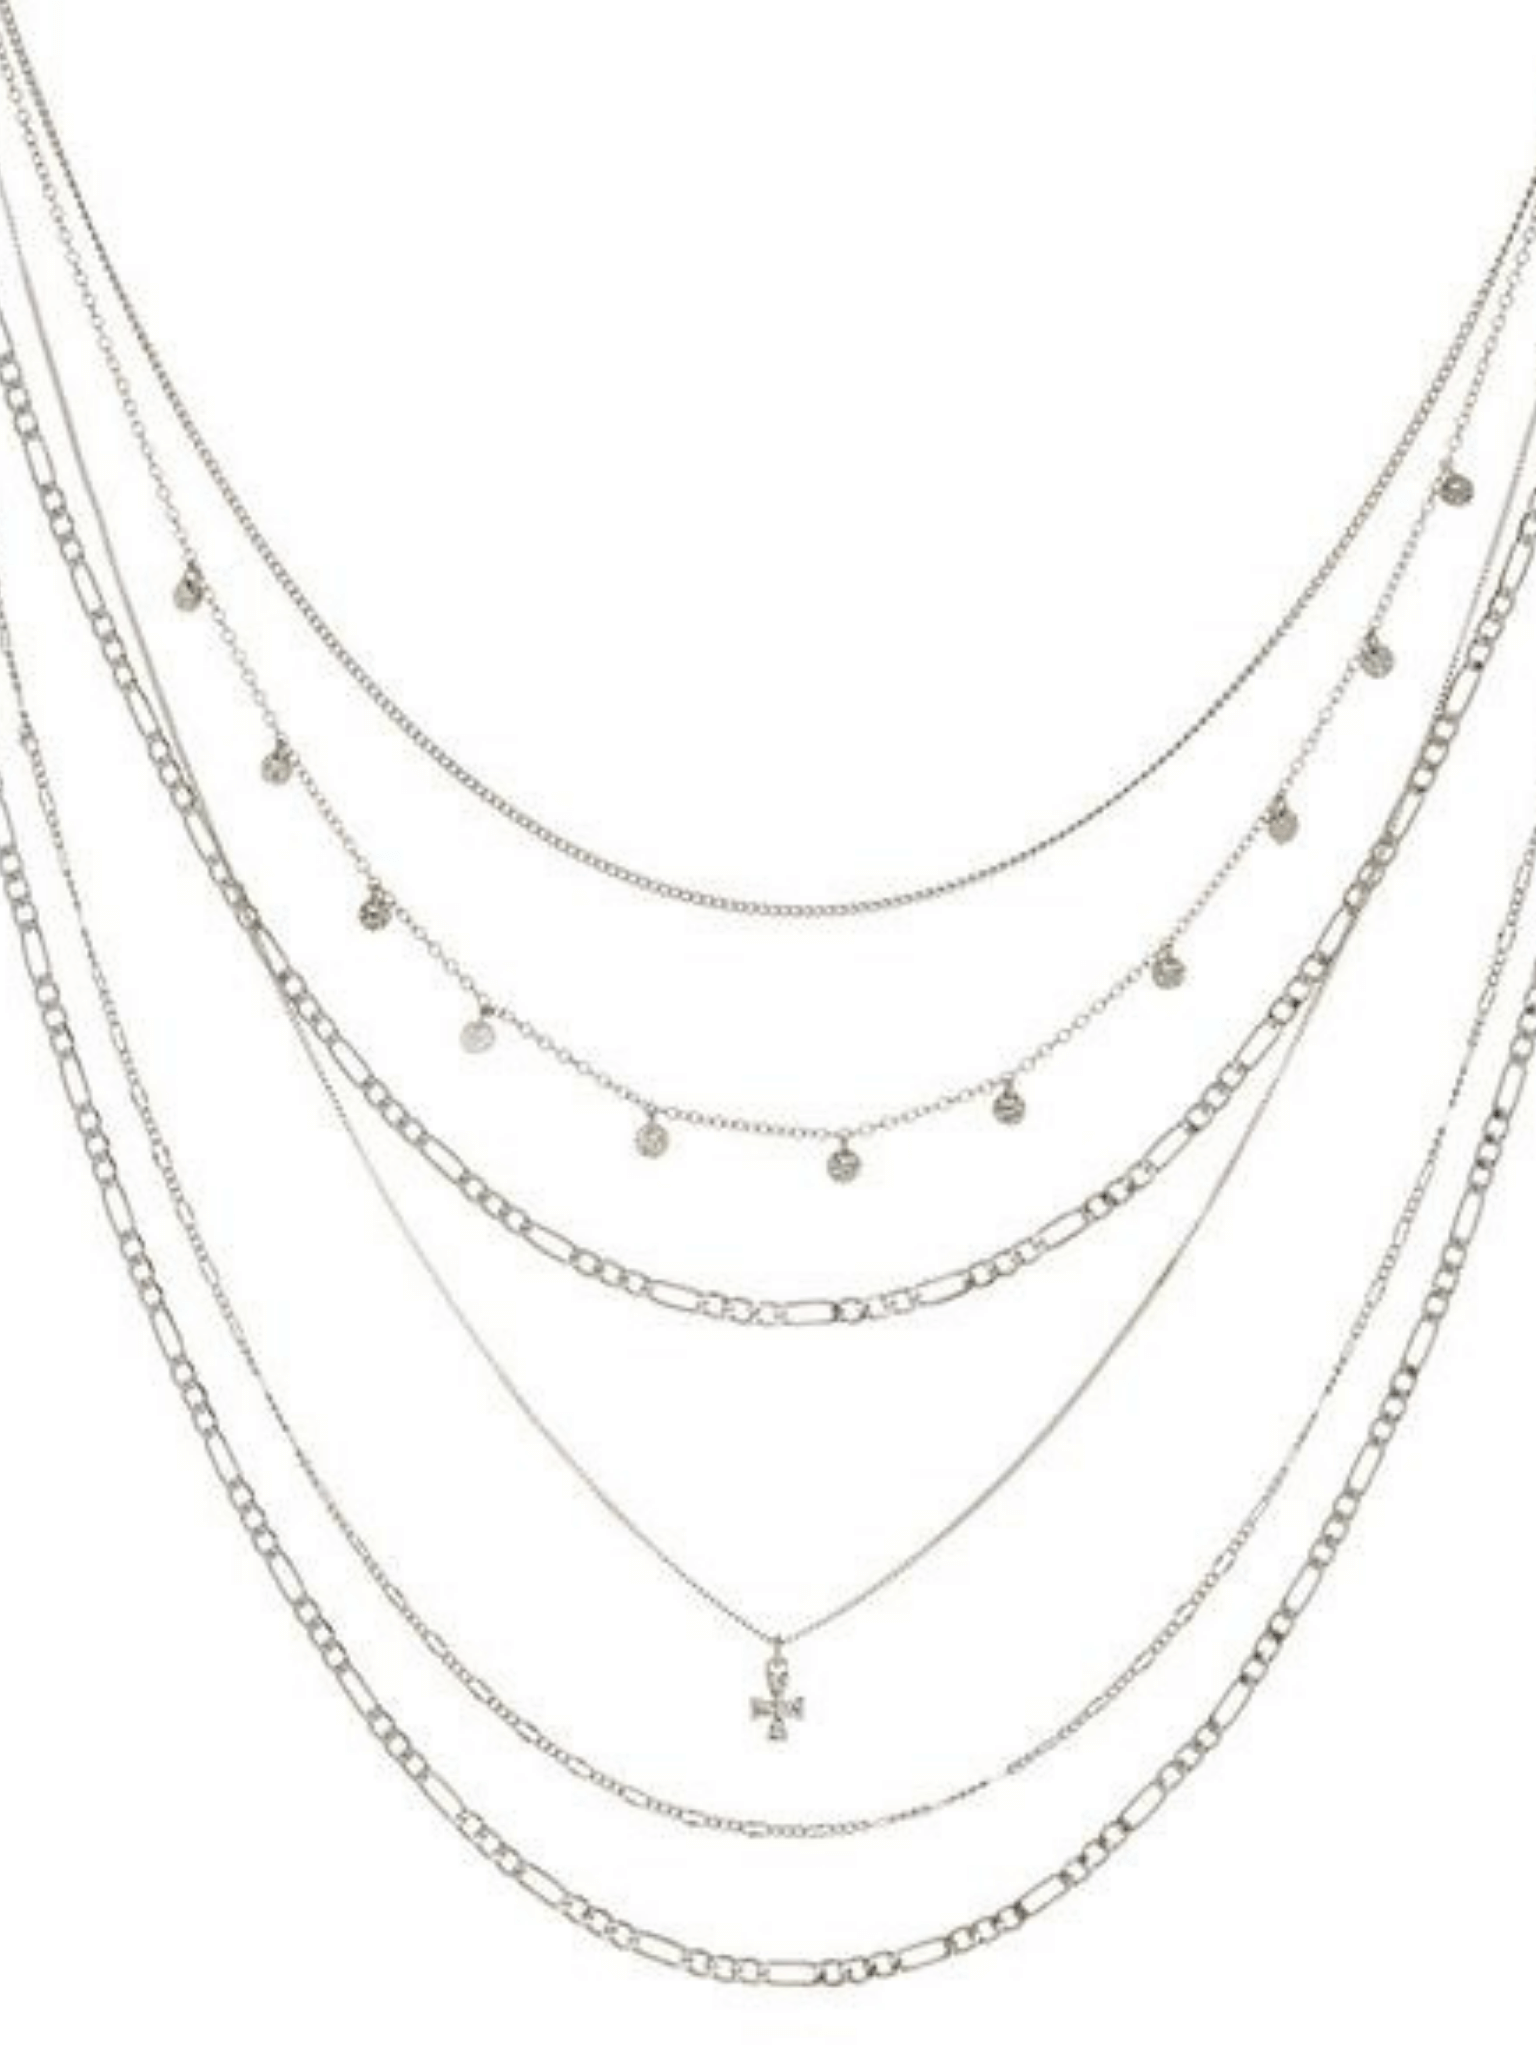 The Hammered Cross Multi Charm Necklace - Silver